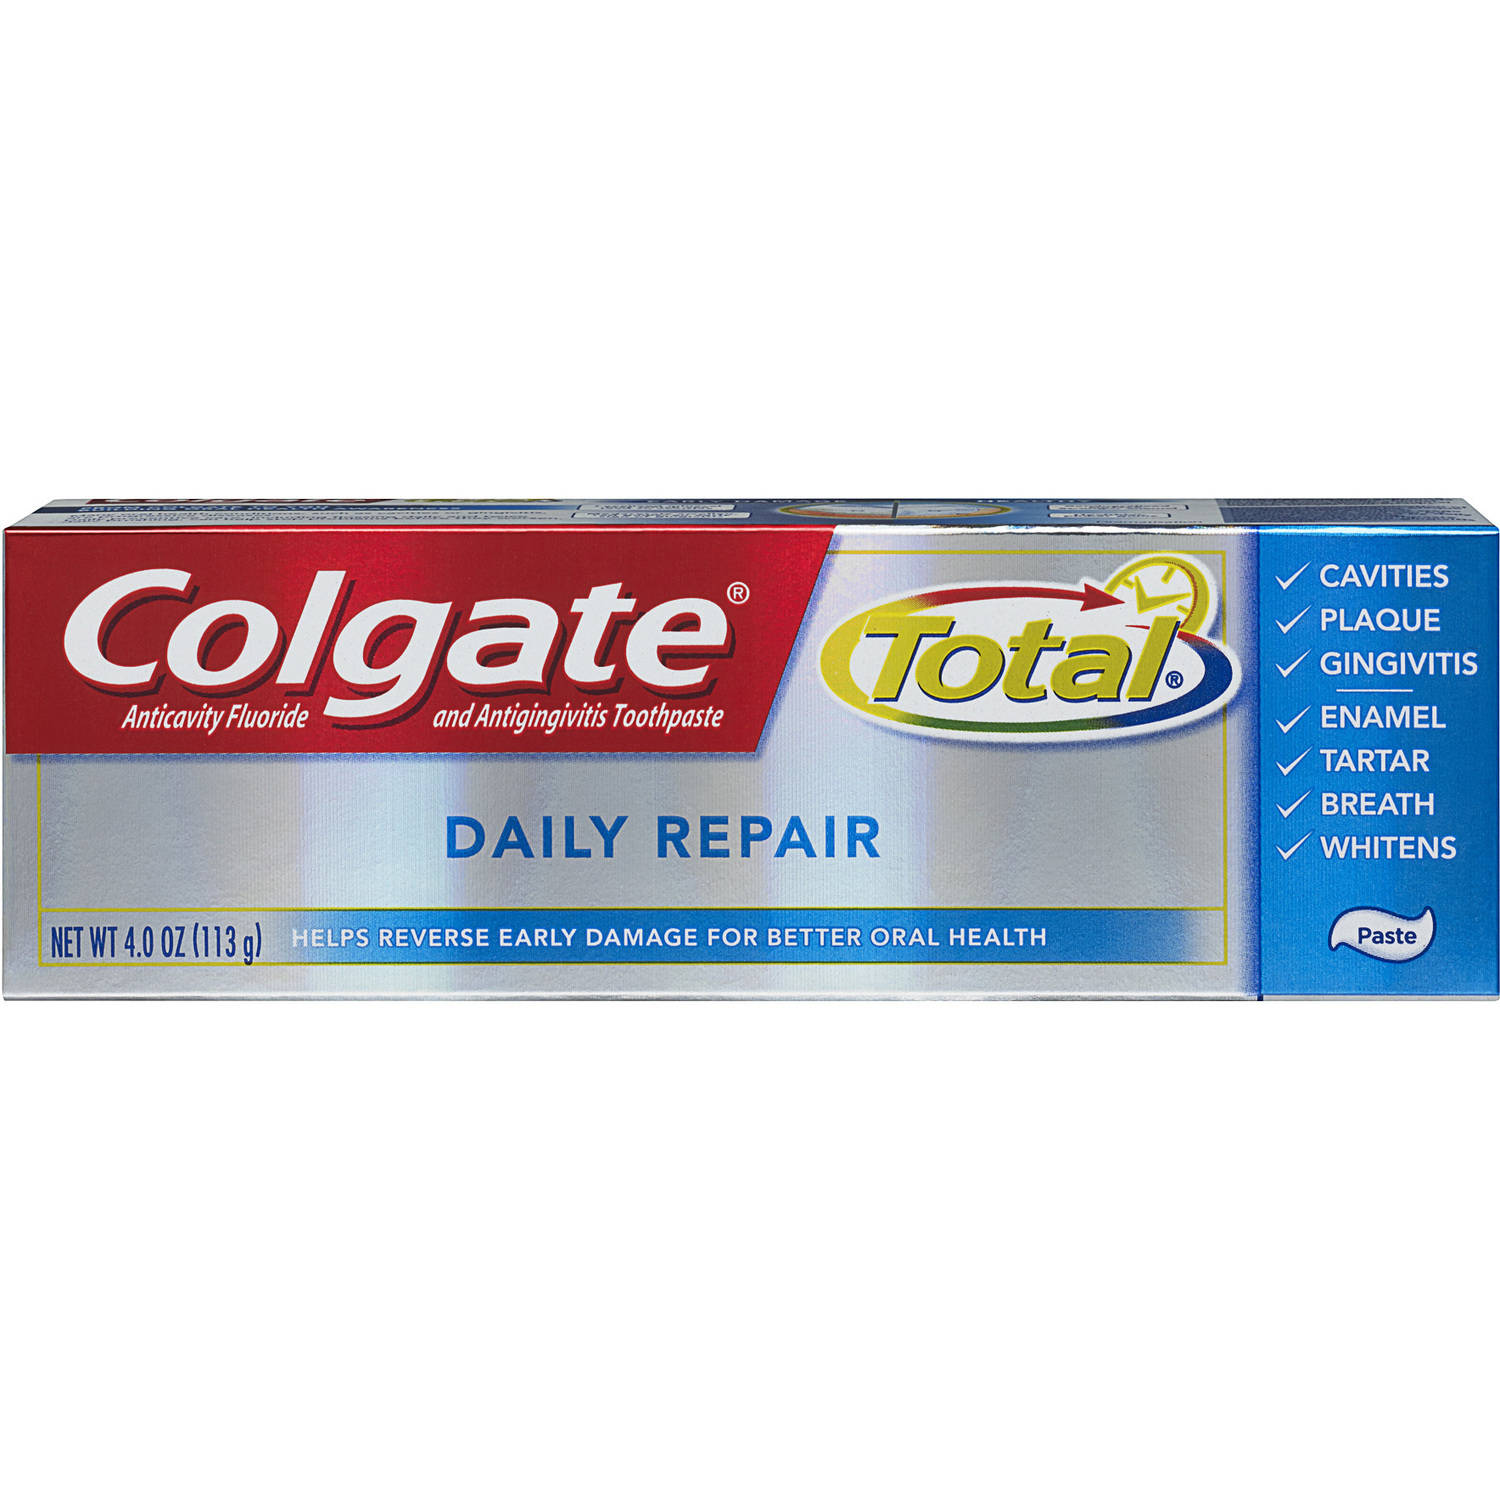 Colgate Total Daily Repair Anticavity Fluoride and Antigingivitis Toothpaste, 4.0 oz